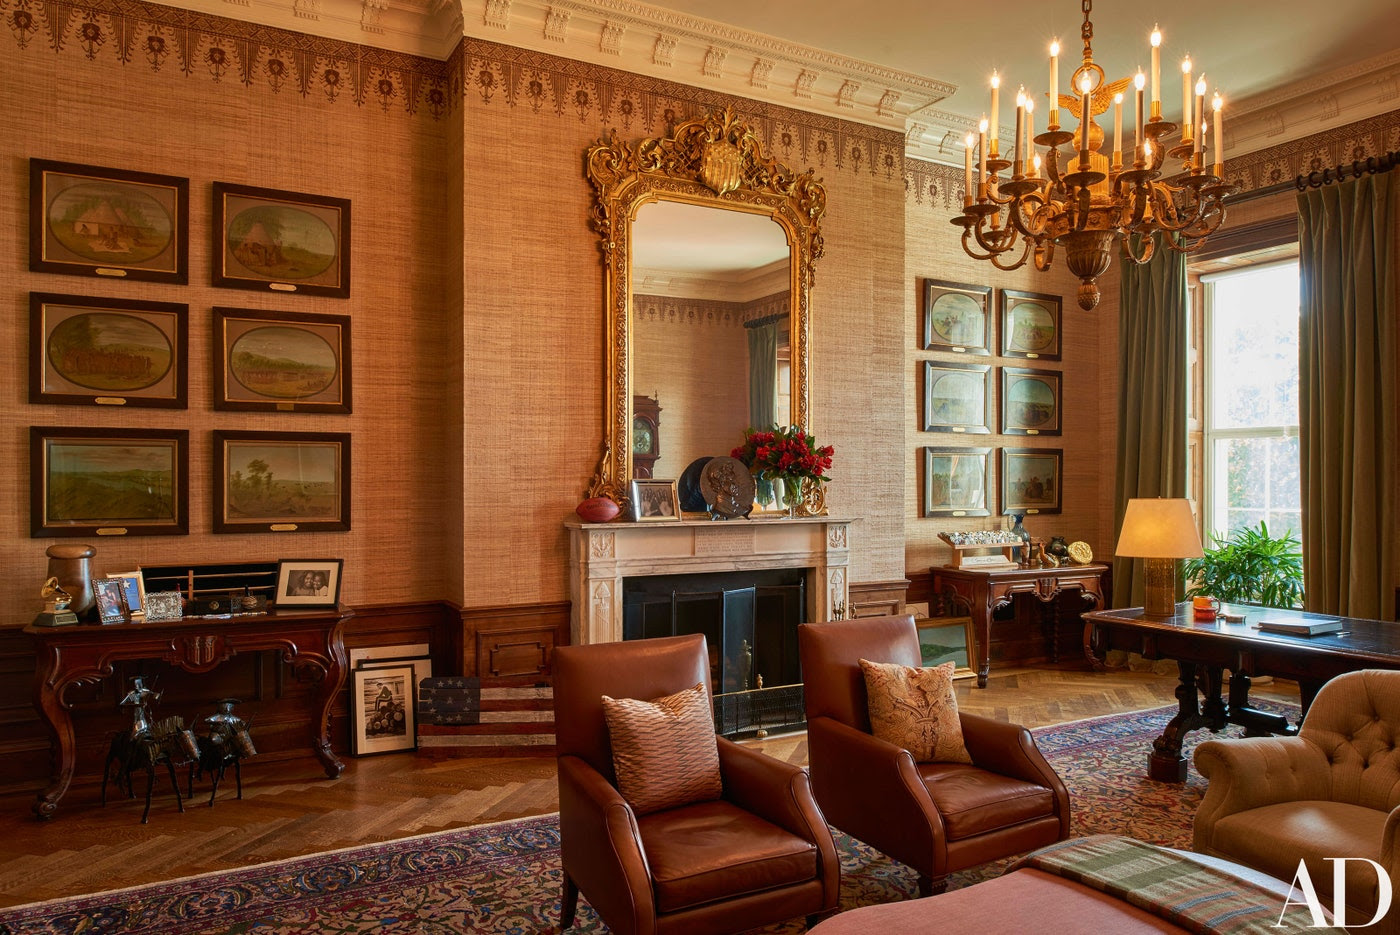 The Treaty Room—filled with memorabilia including one of the President's two Grammy Awards, family photos, and a personalized football—is where Mr. Obama often retreats late at night. He uses the room's namesake table (far right), which has been in the White House since 1869, as a desk. George Catlin scenes of Native American life hang on walls covered in custom-stenciled Larsen abaca. Eighteen-fifties overmantel mirror; 1930s Hereke carpet.